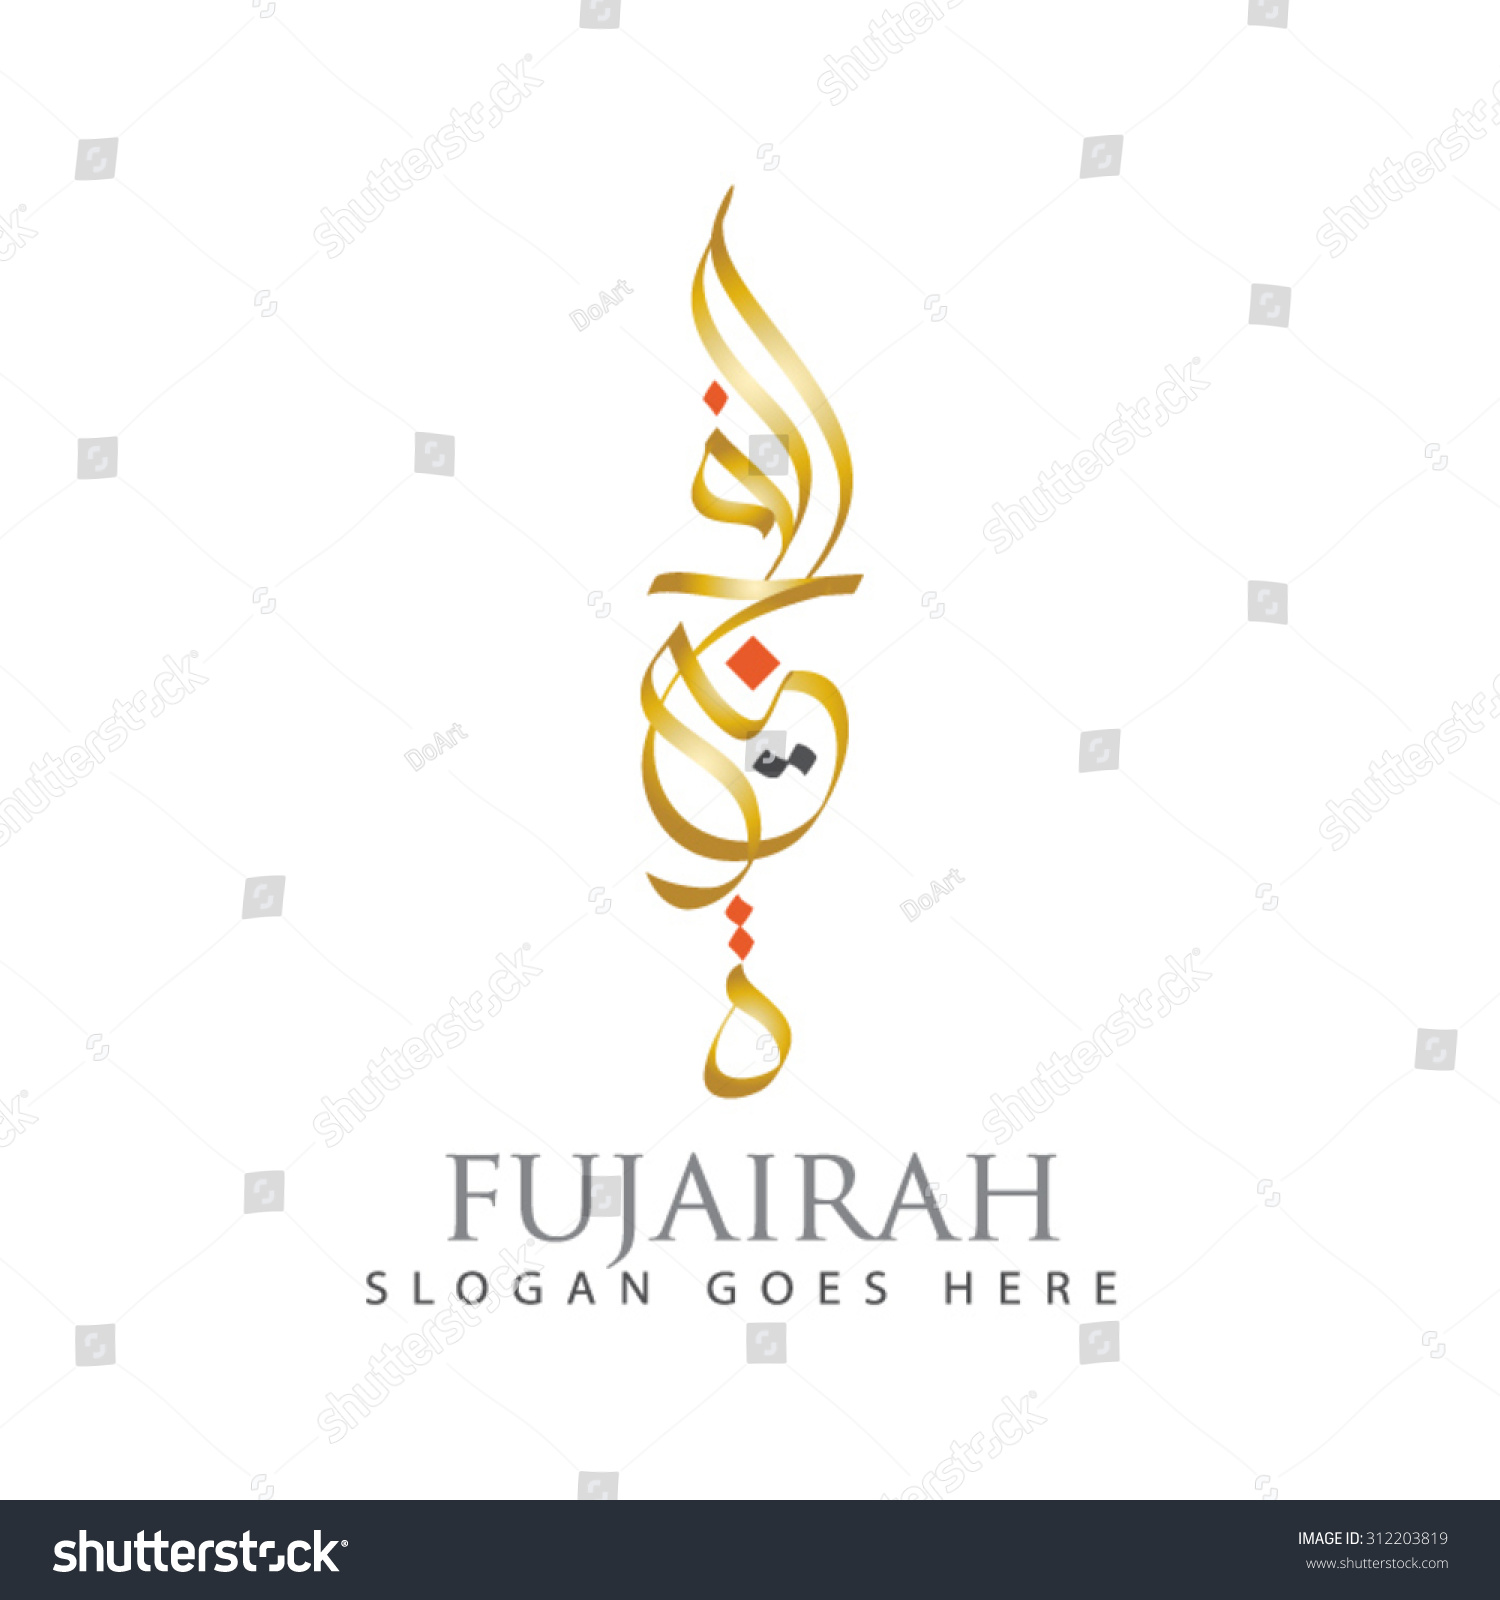 al fujairah logo illustrator file created stock vector